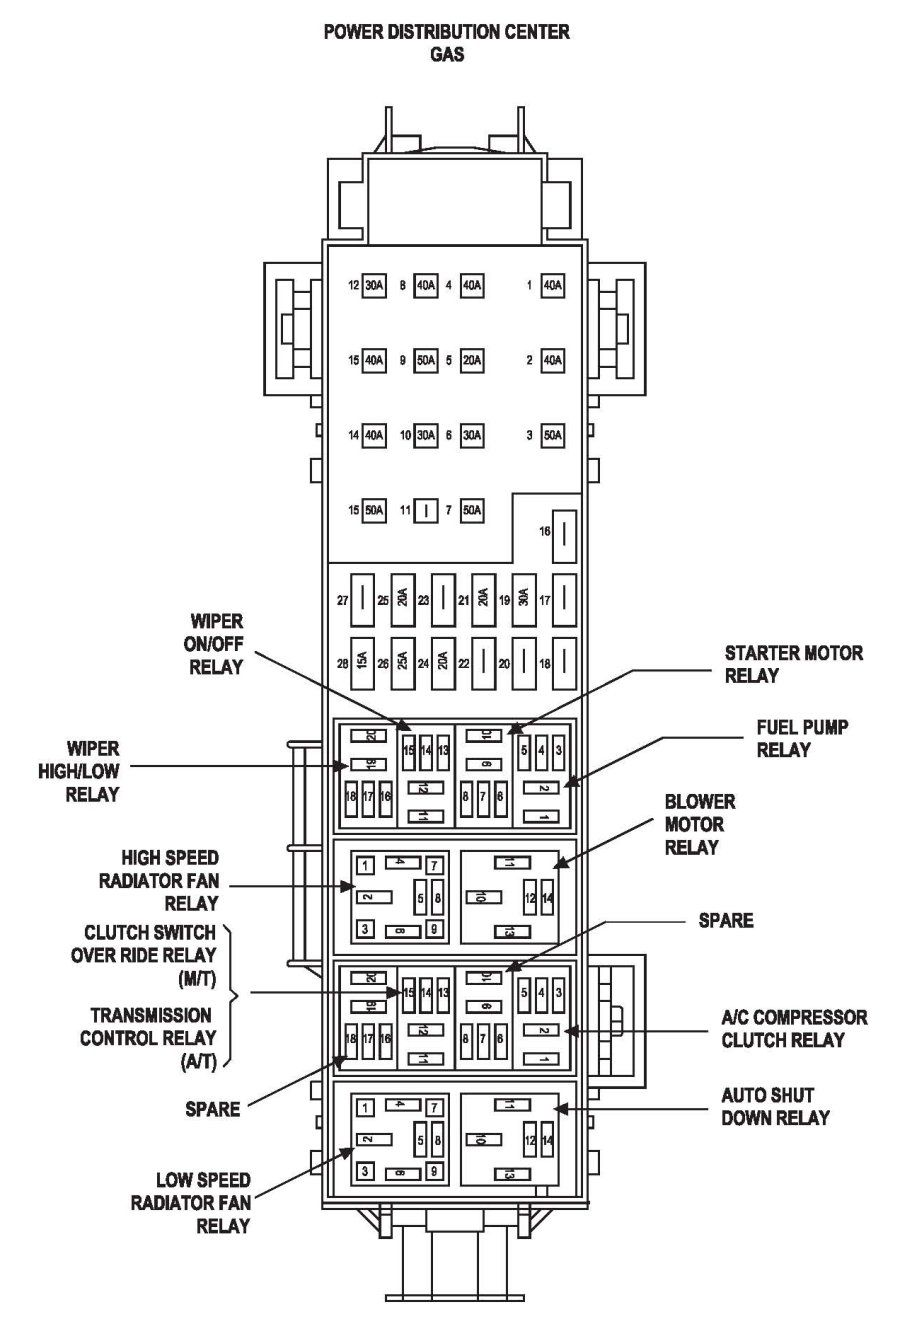 jeep liberty fuse box diagram image details jeep liberty rh pinterest com 2004 Jeep Liberty Wiring-Diagram Jeep Liberty Transmission Diagram